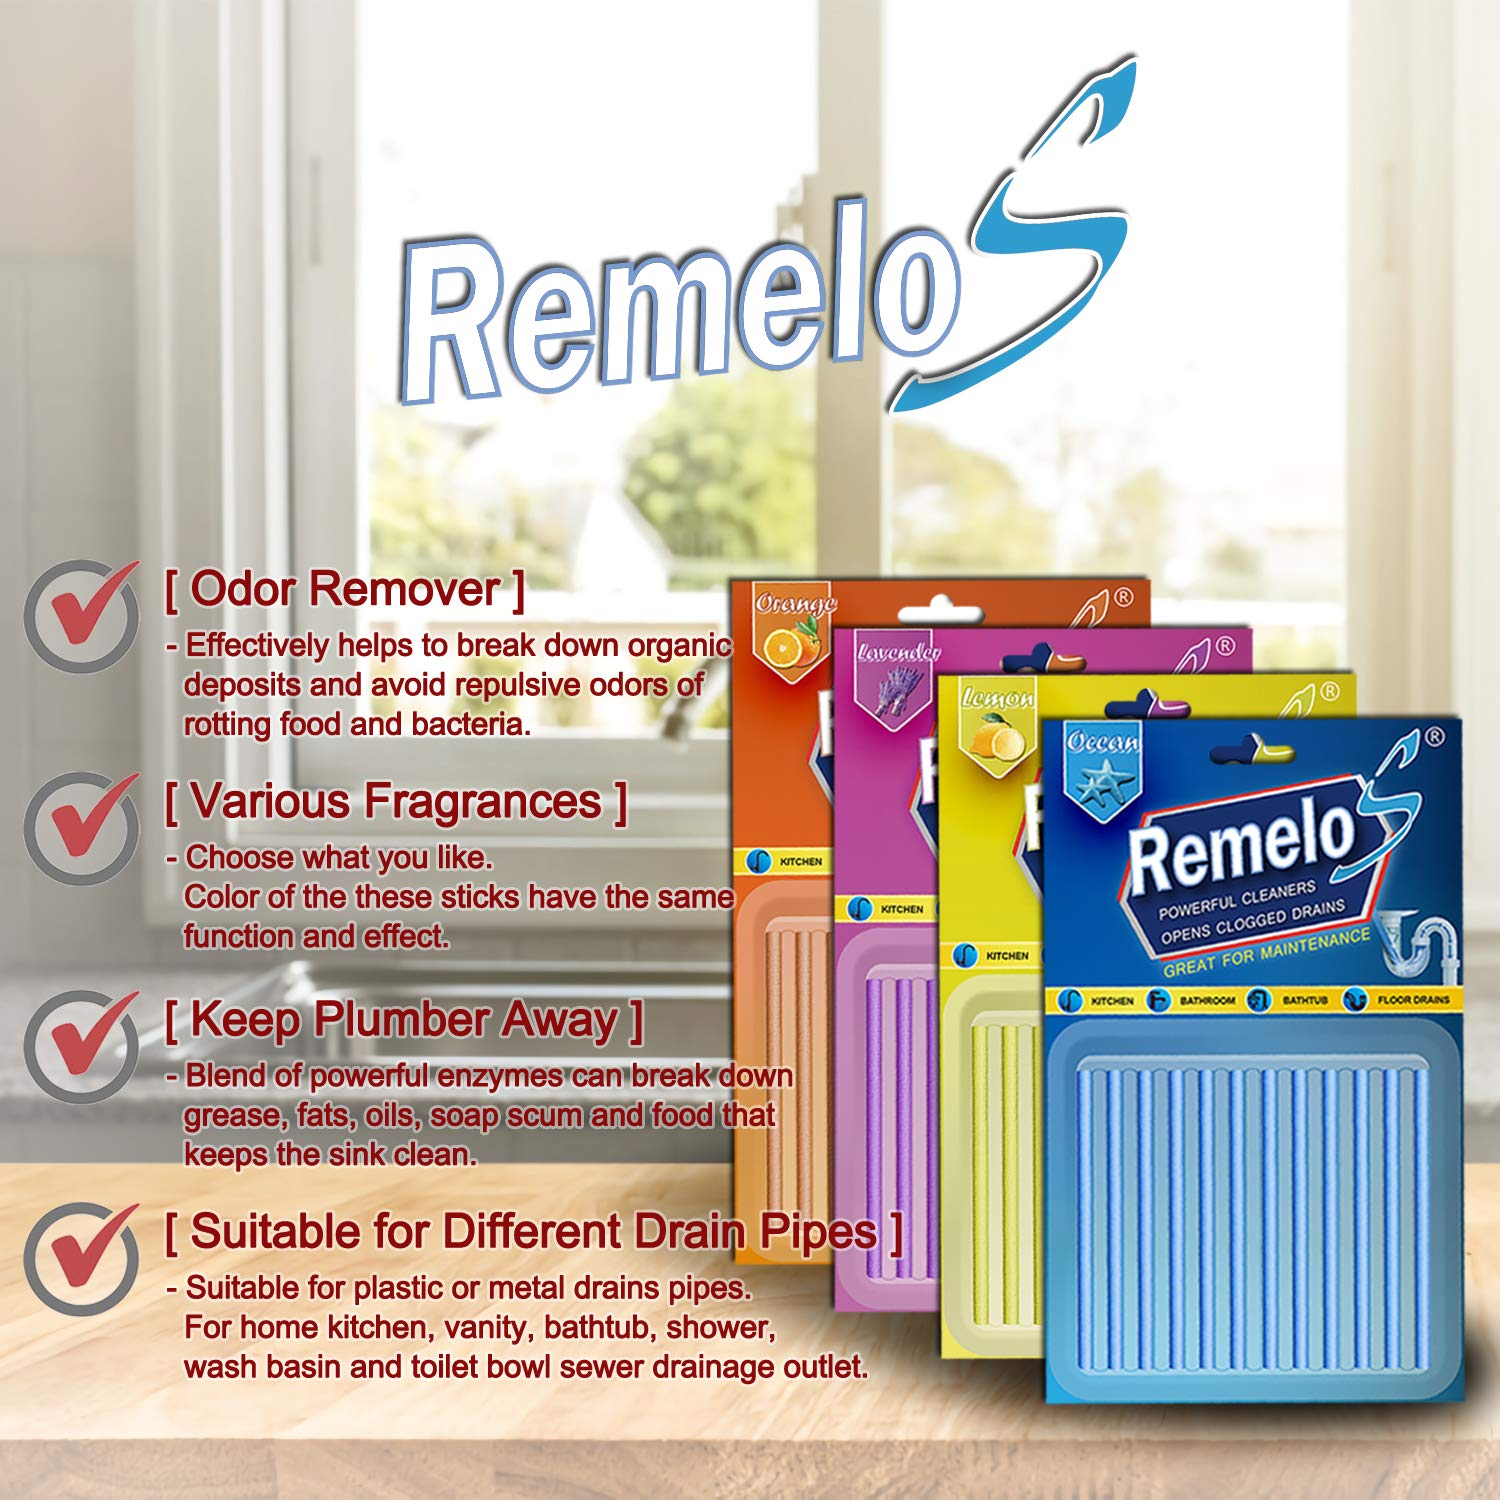 Remelos Drain Cleaner Sticks,Non-Toxic, Enzyme Formula to Eliminate Odors and Prevents Clogged Drains Clean Batonnet Deodorizer Package, 48 Pack. As Seen on TV Keeps Drains Pipes Clear(48pack) by Remelos (Image #5)